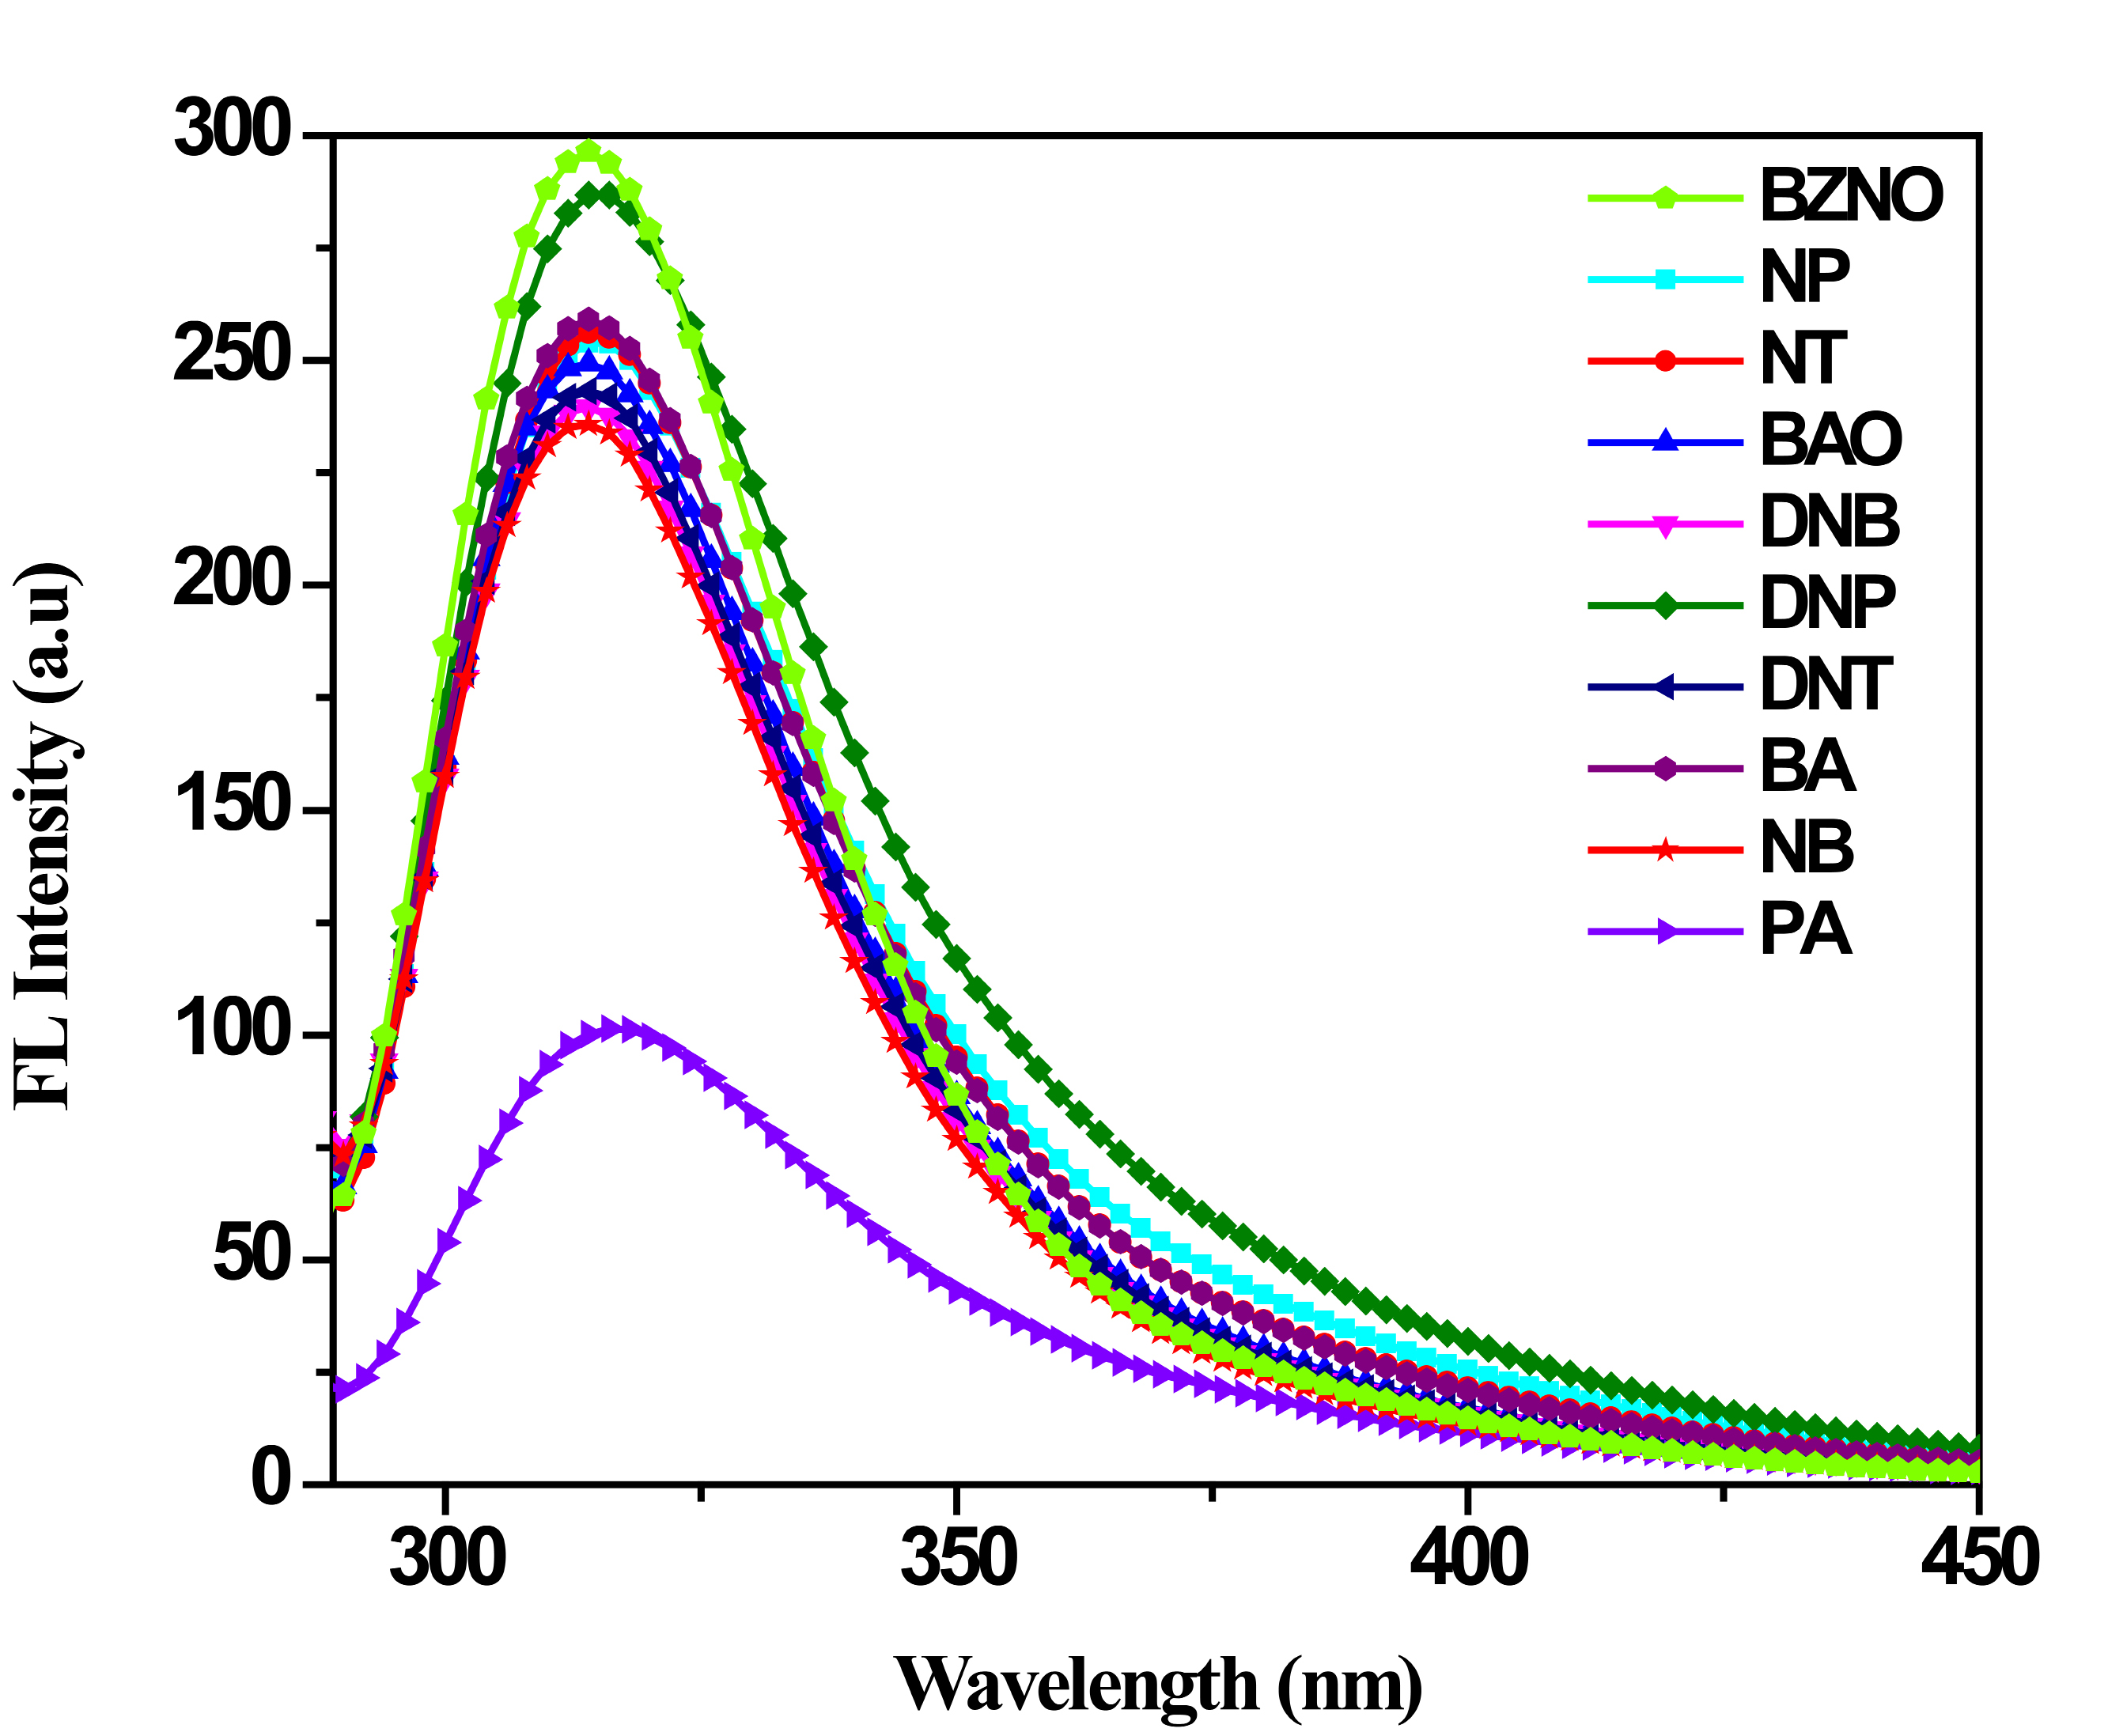 Figure 5. Fluorescence emission spectra of ZnO nanoparticle with different nitroaromatics.